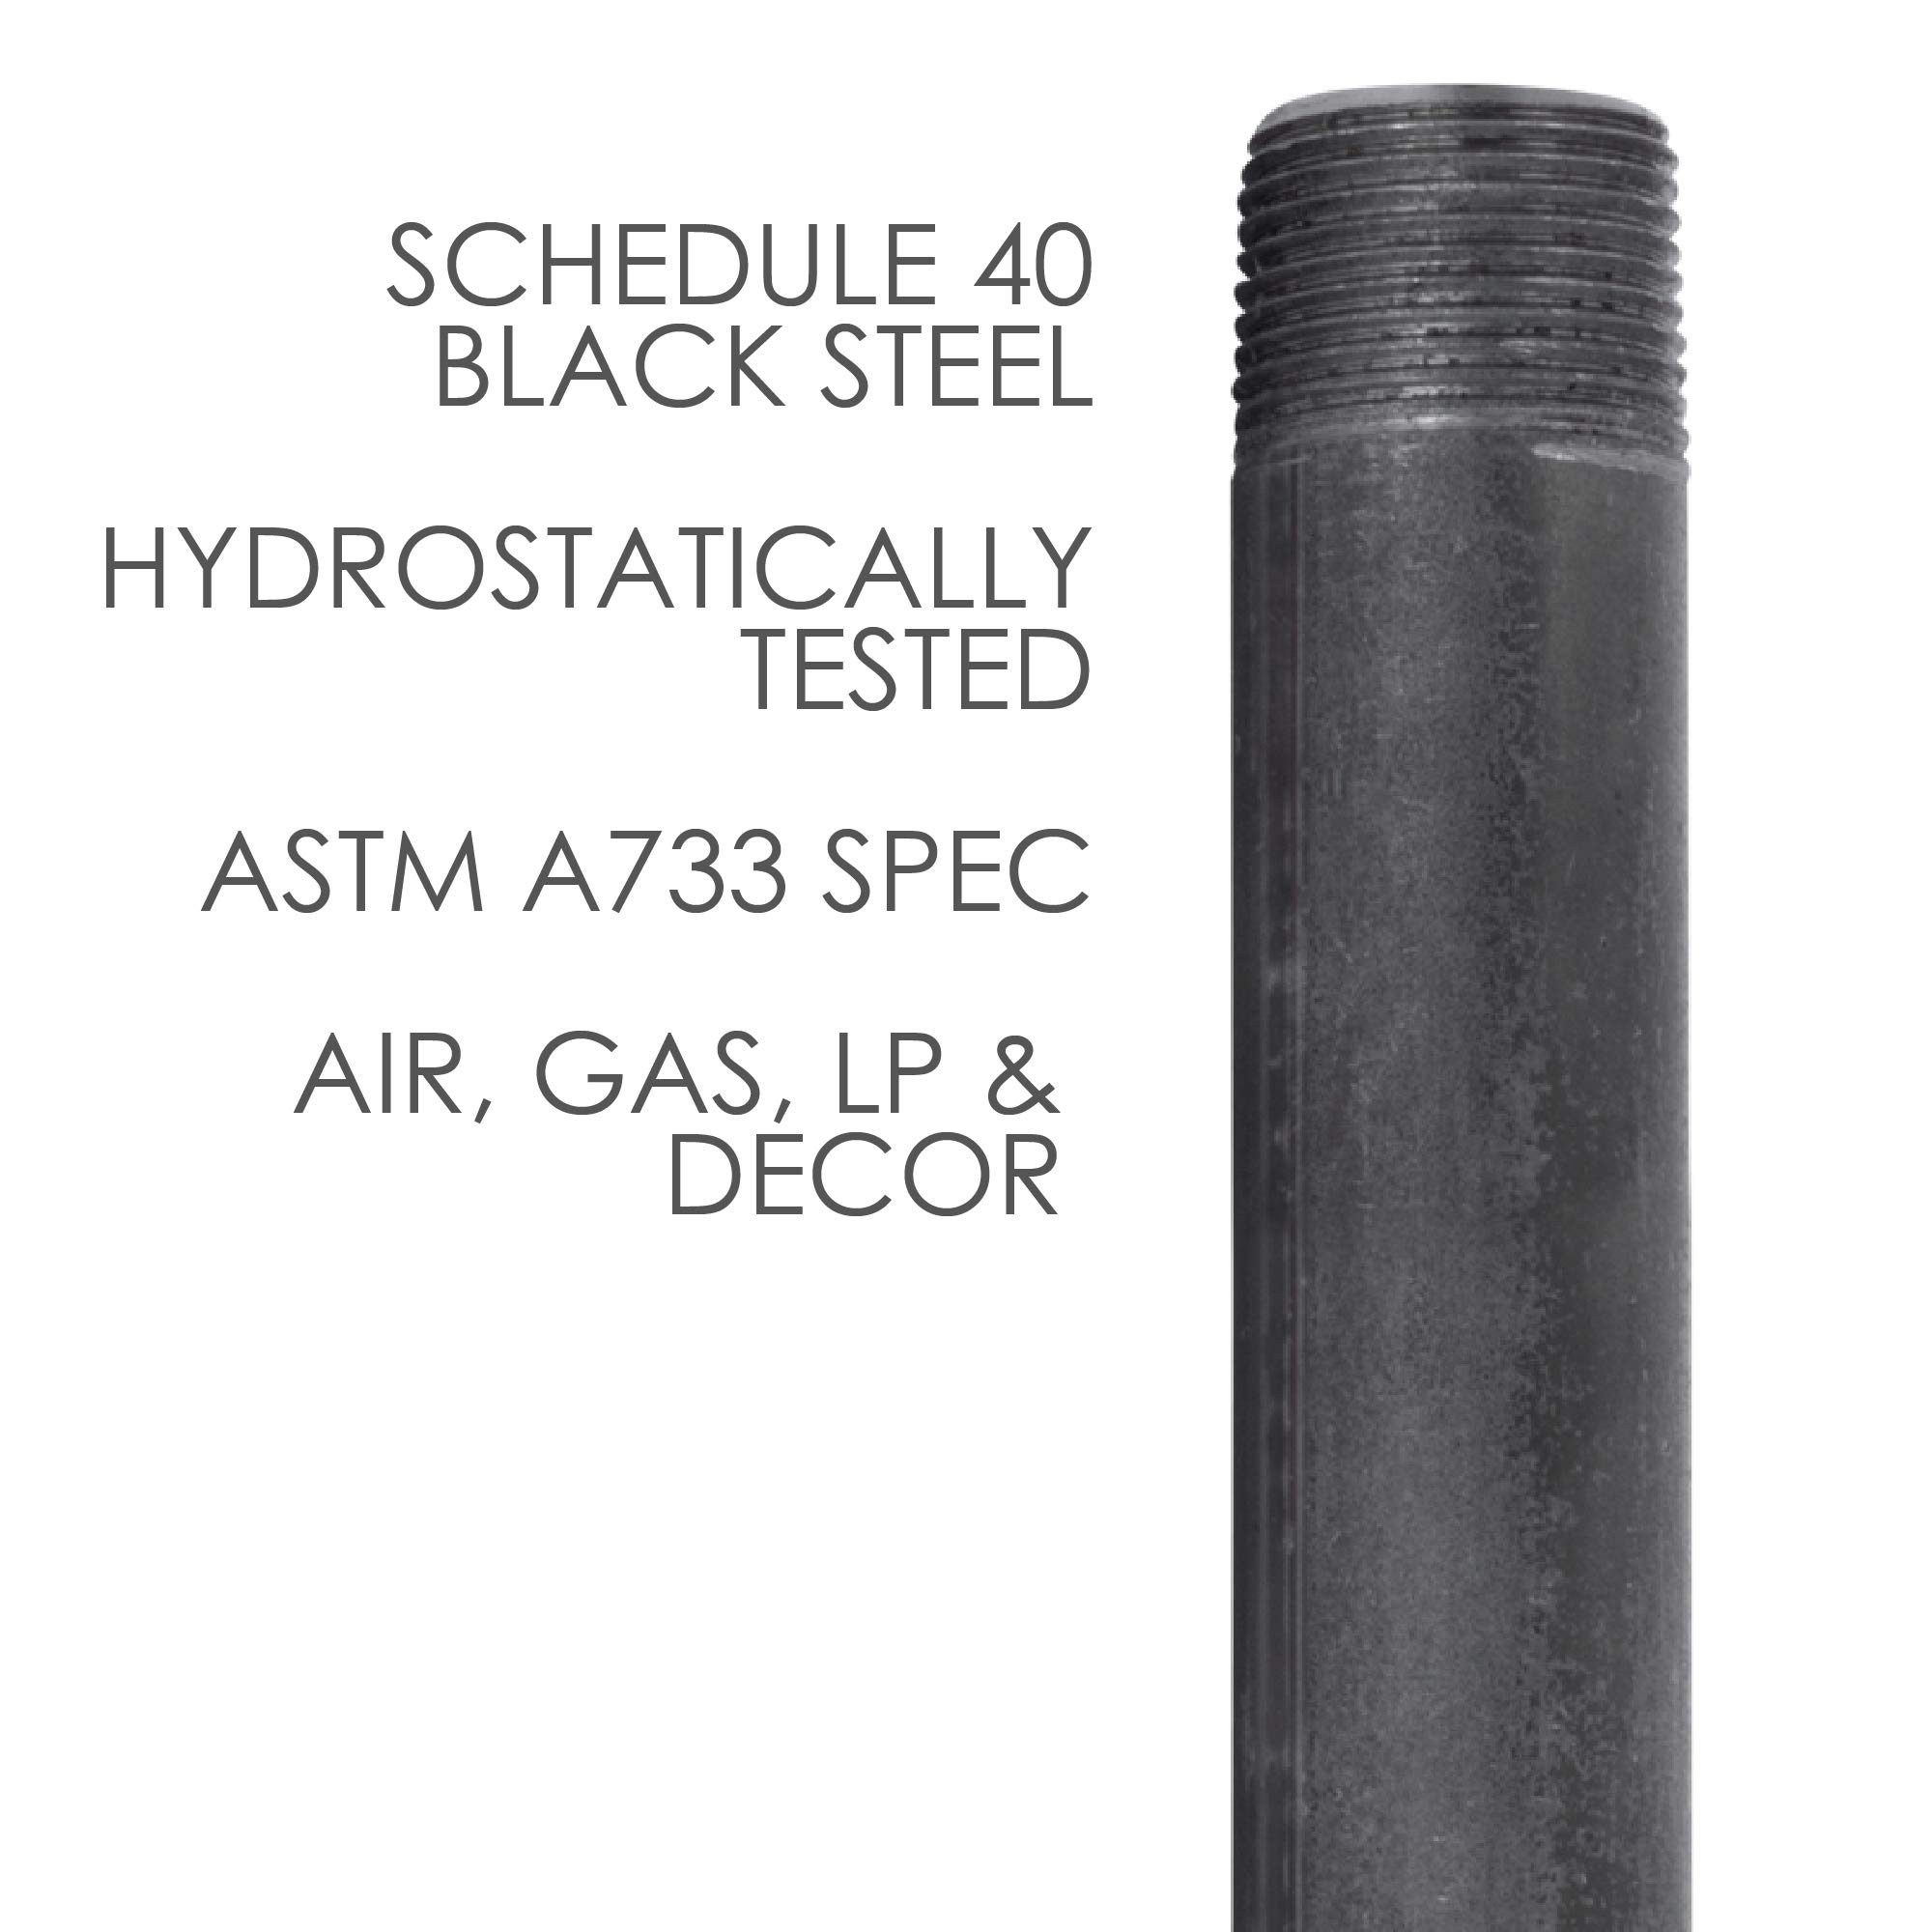 Pipe Decor 3/4'' x 24'' Malleable Cast Iron Pipe, Pre Cut, Industrial Steel Grey Fits Standard Three Quarter Inch Black Threaded Pipes Nipples and Fittings, Build Vintage DIY Furniture, 4 Pack by PIPE DÉCOR (Image #5)